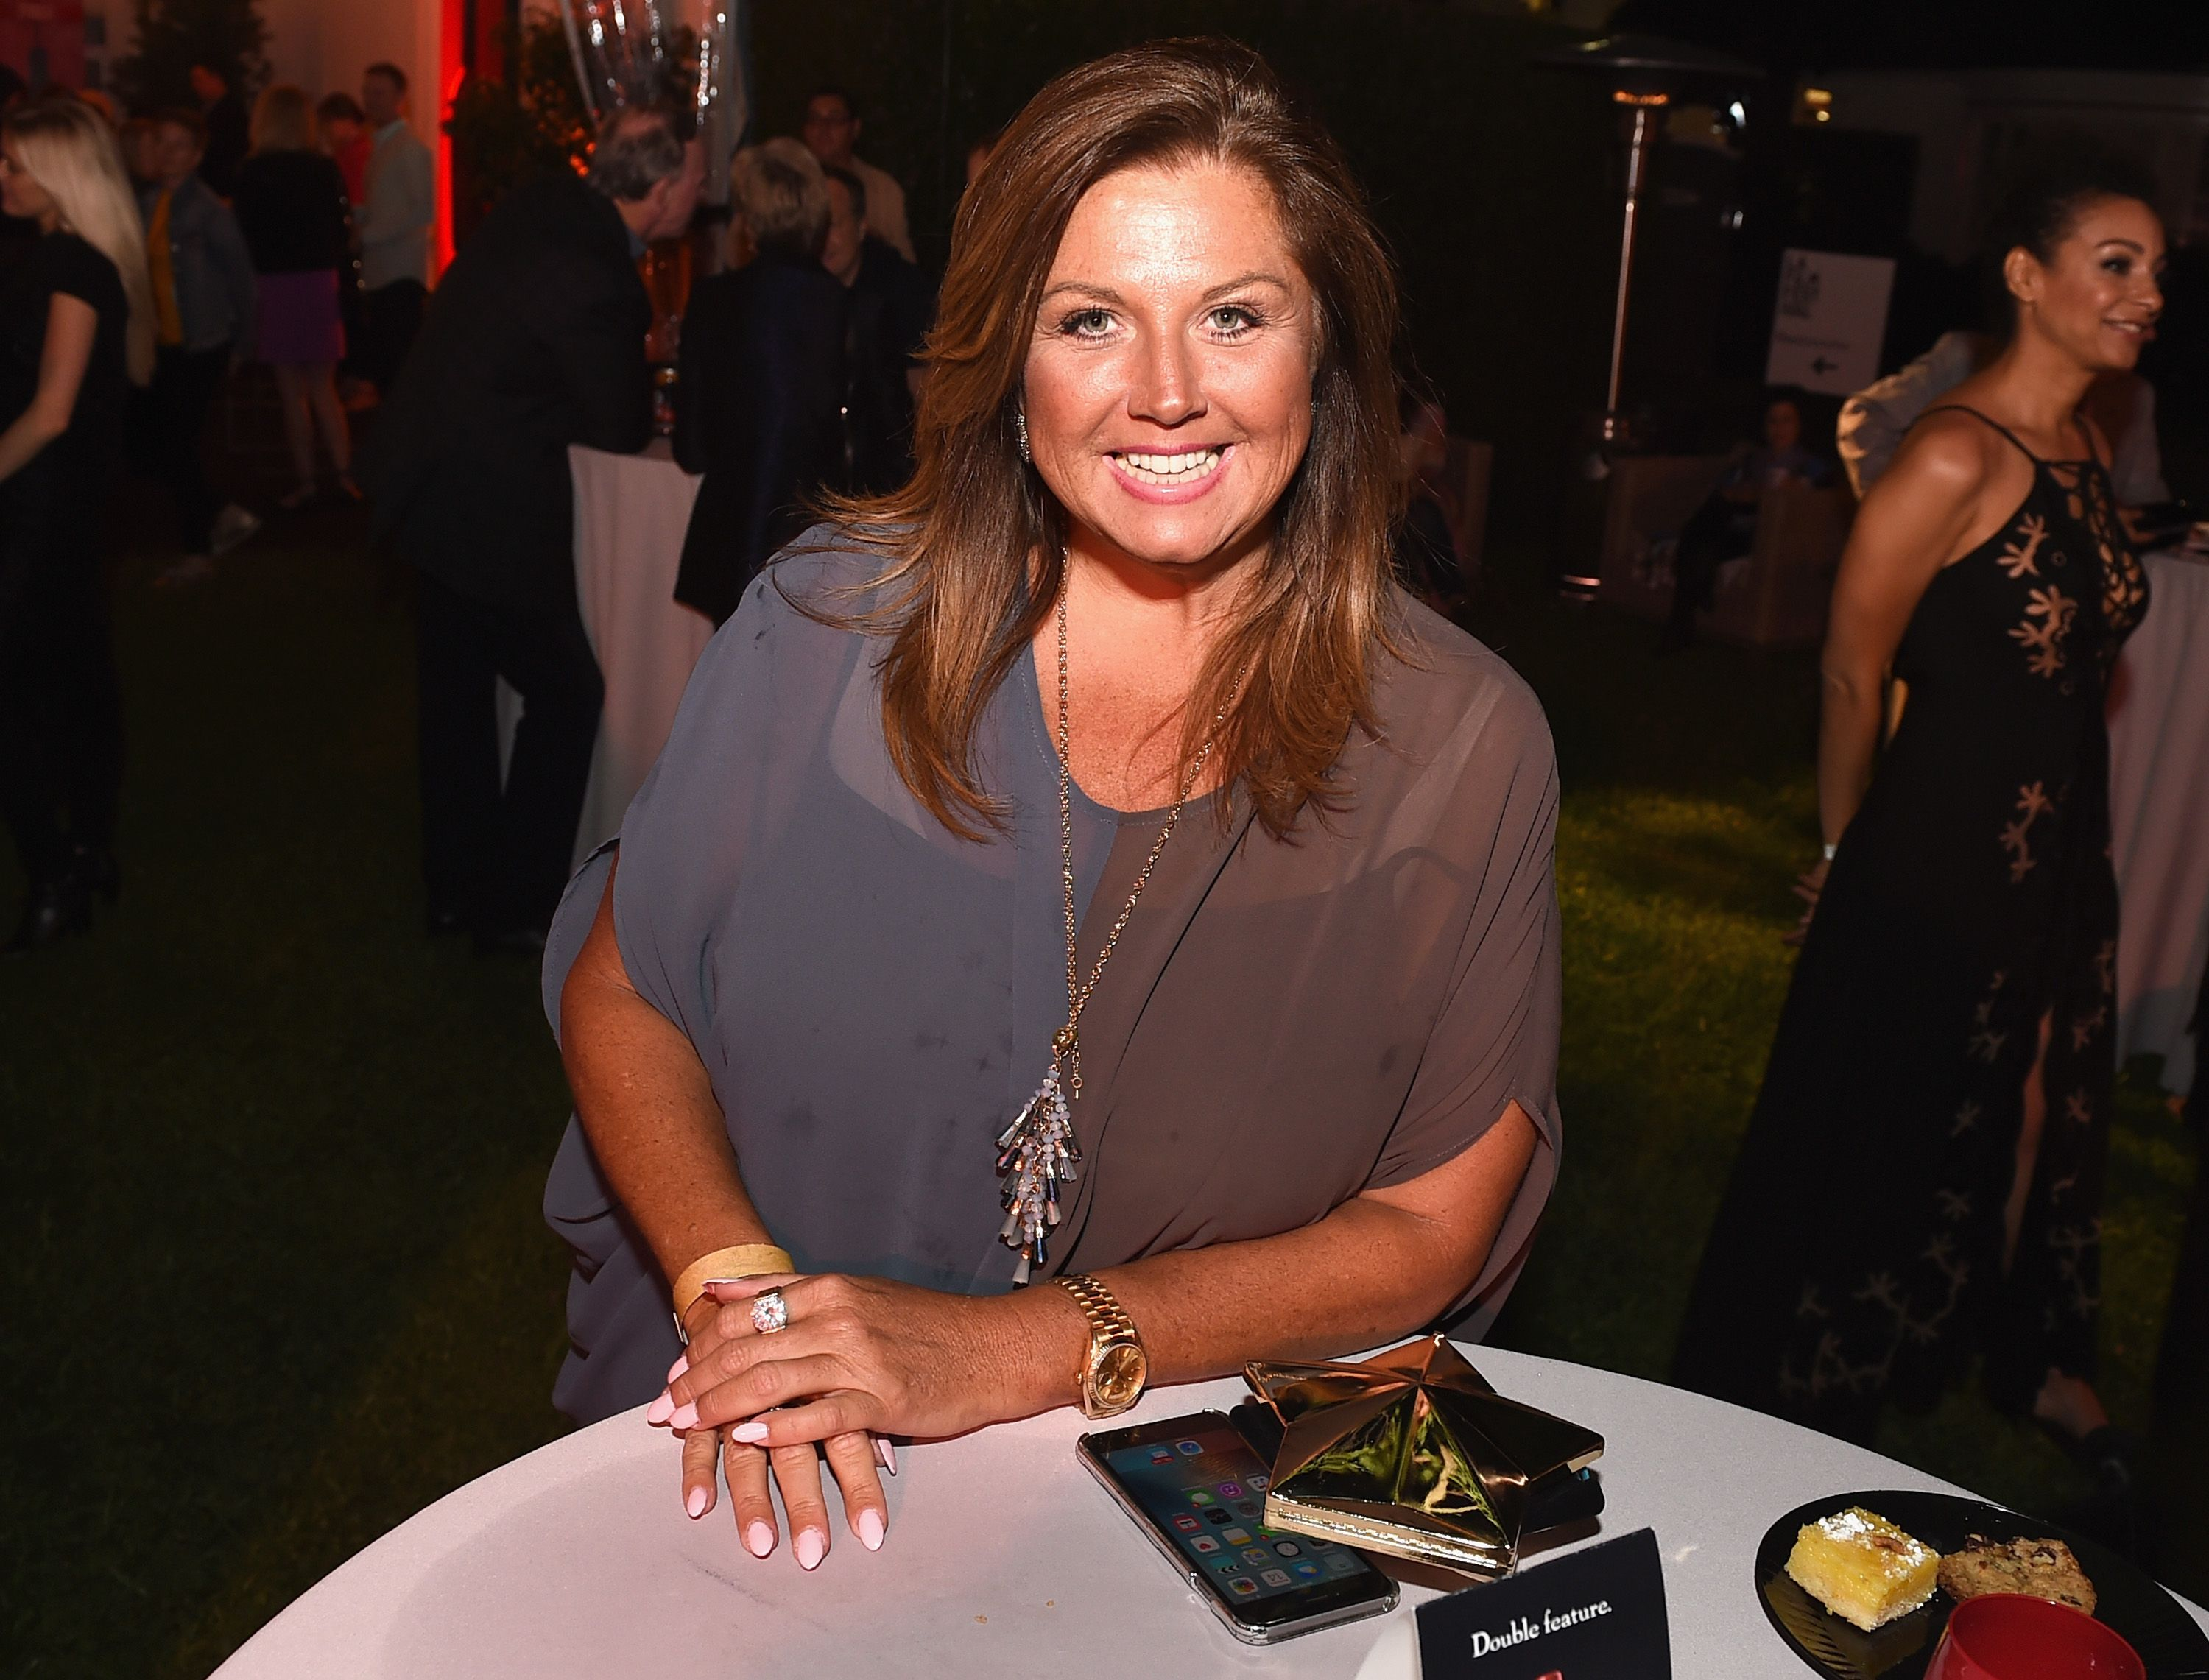 Why Did 'Dance Moms' Star Abby Lee Miller Go To Prison? Everything You Need to Know